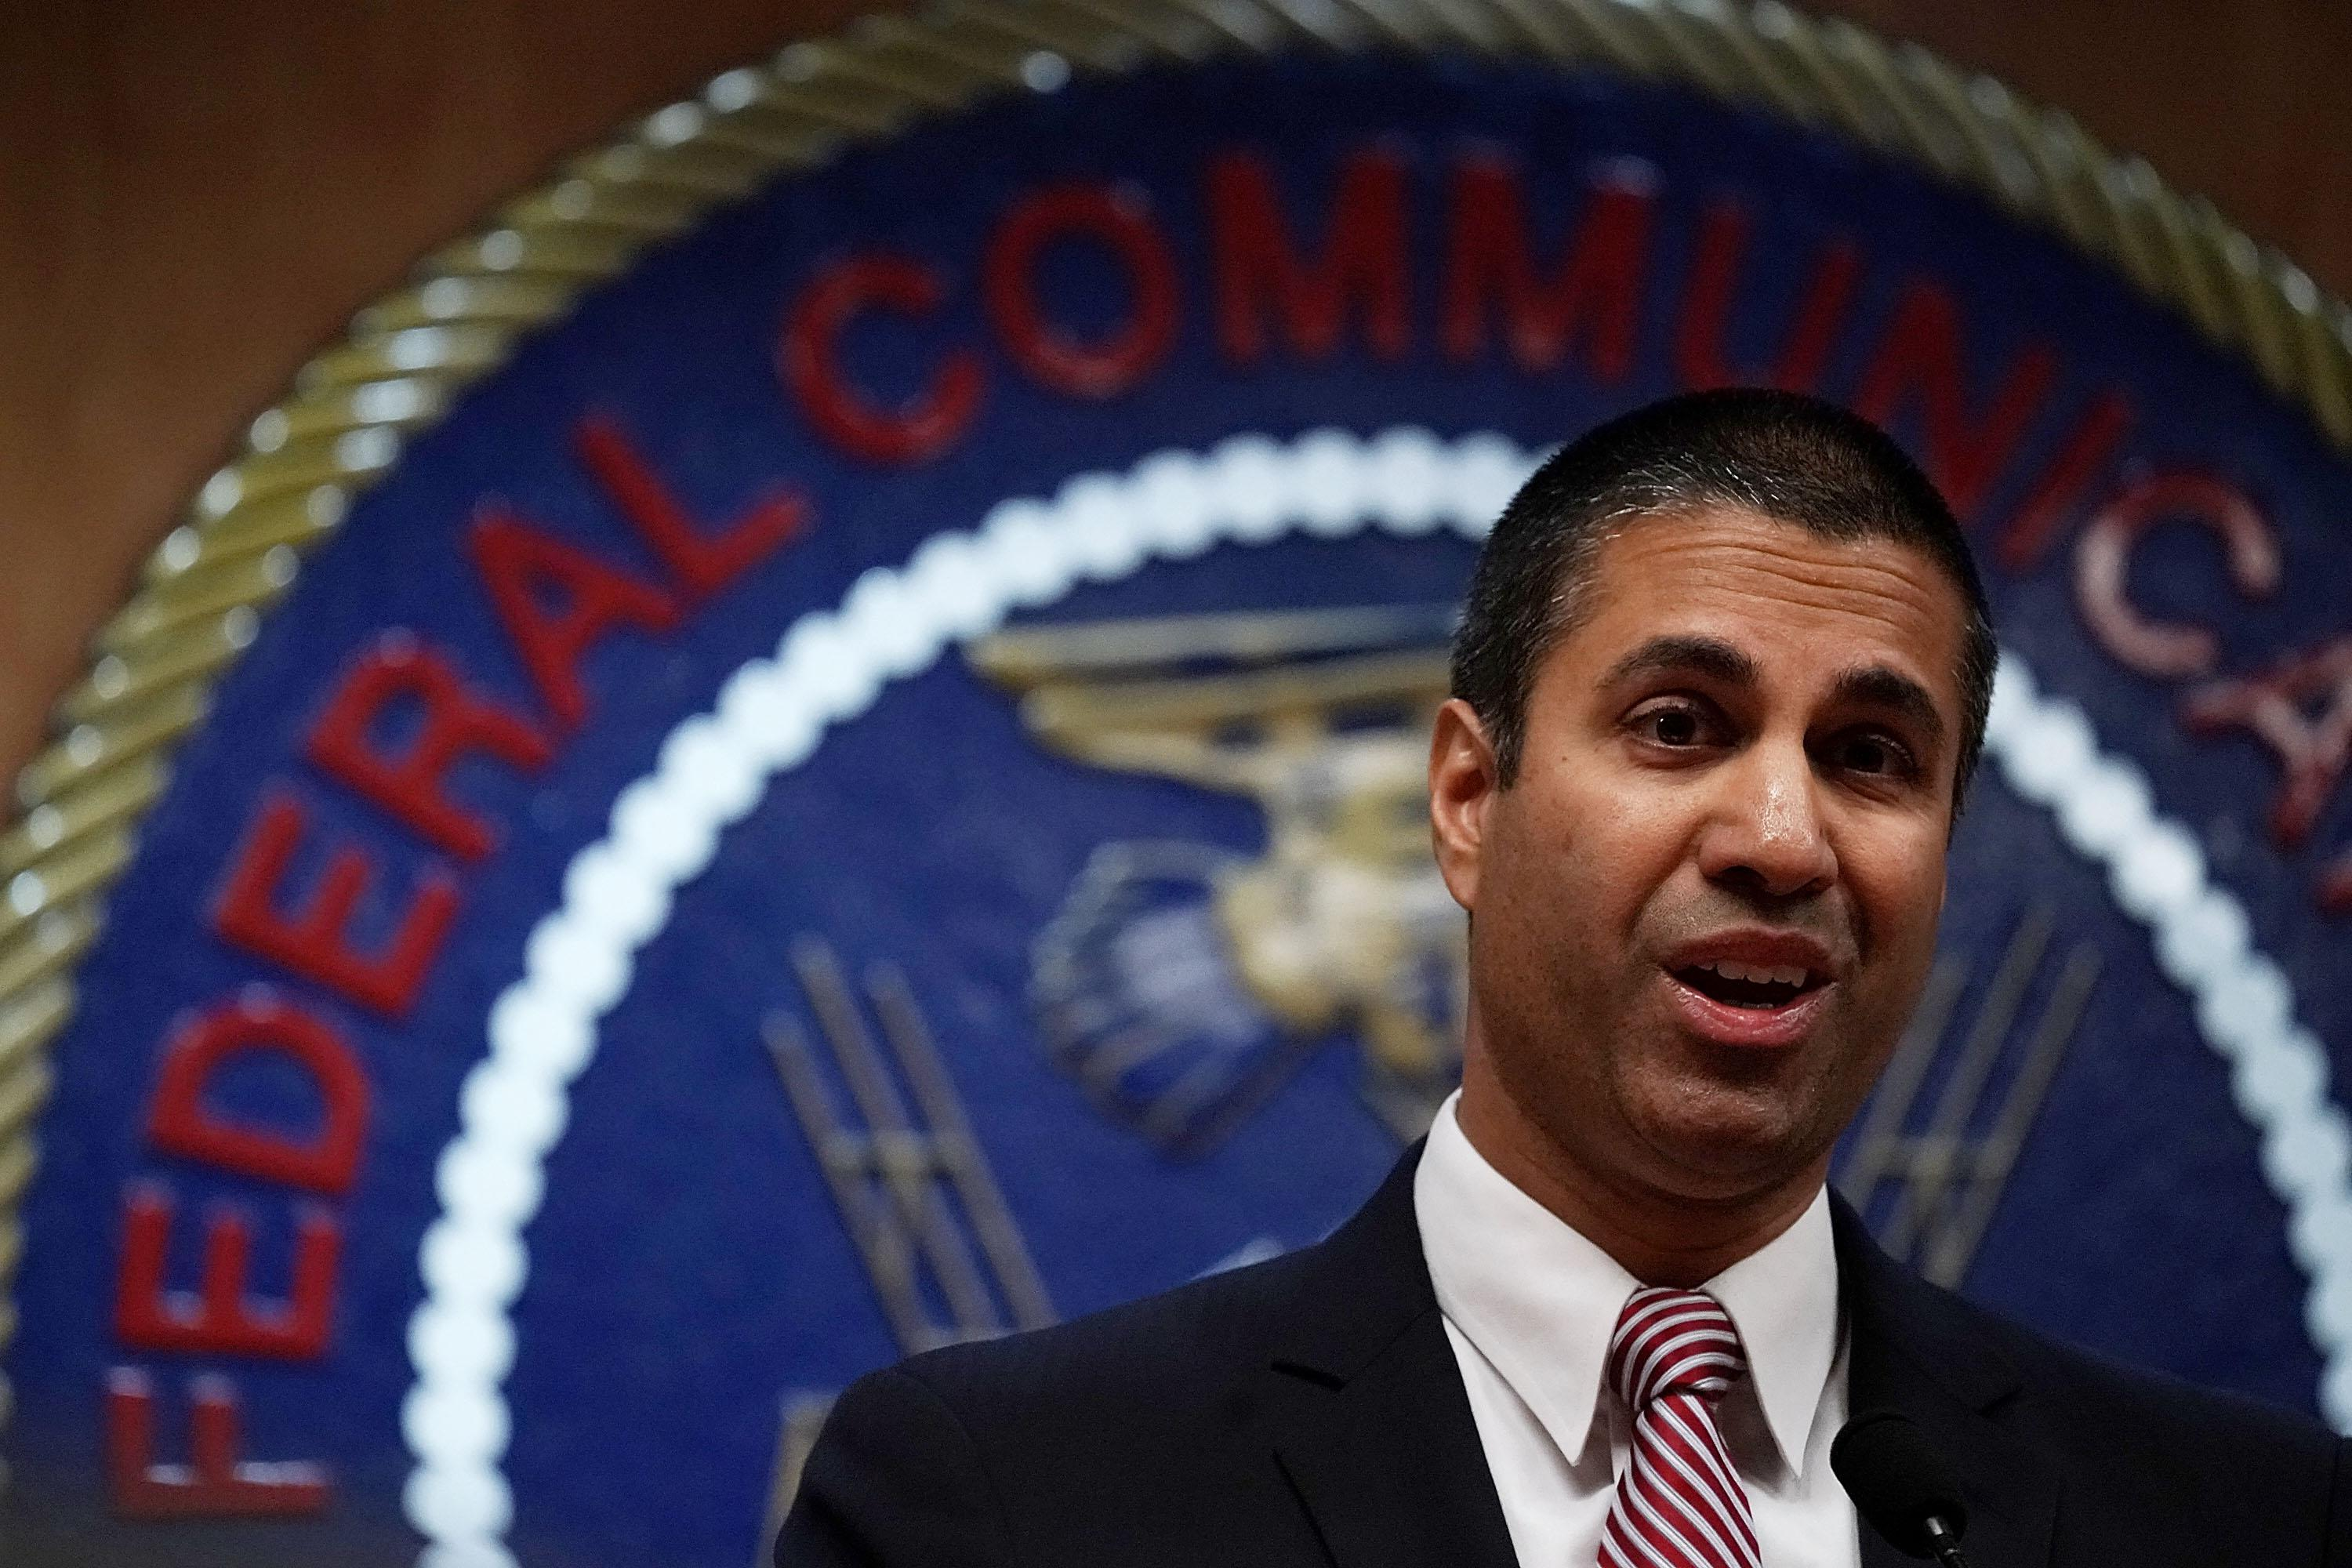 Federal Communications Commission Chairman Ajit Pai speaks to members of the media after a commission meeting December 14, 2017 in Washington, DC. FCC has voted to repeal its net neutrality rules at the meeting.  (Photo by Alex Wong/Getty Images)